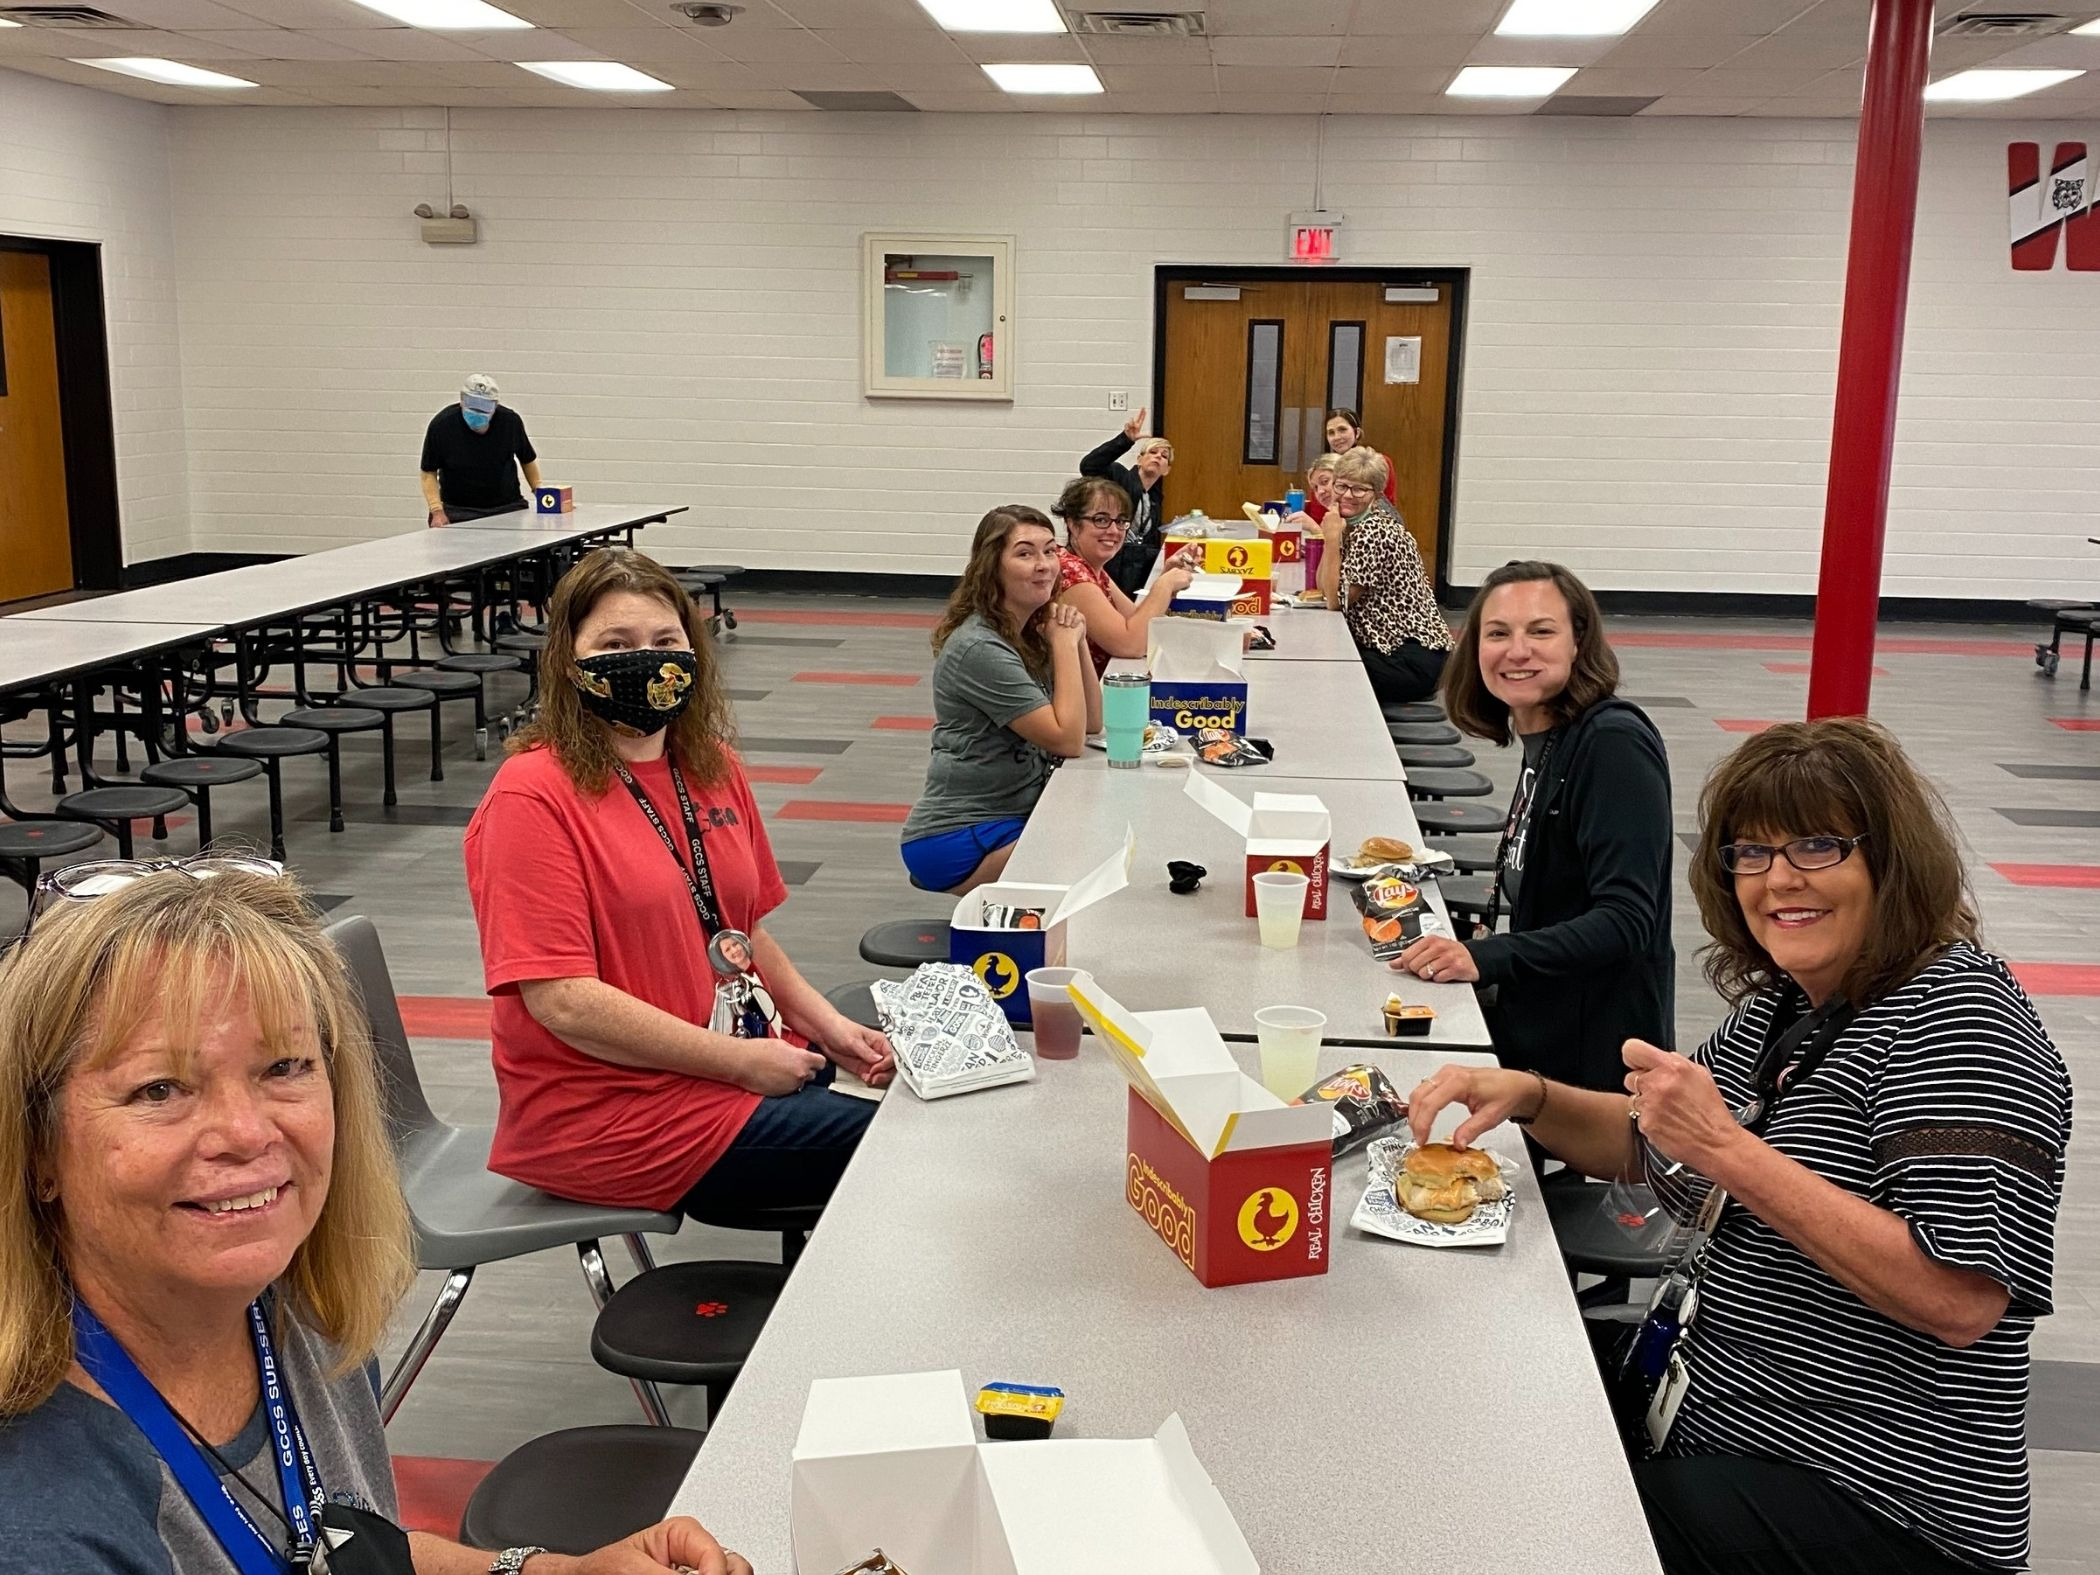 Staff members eating lunch